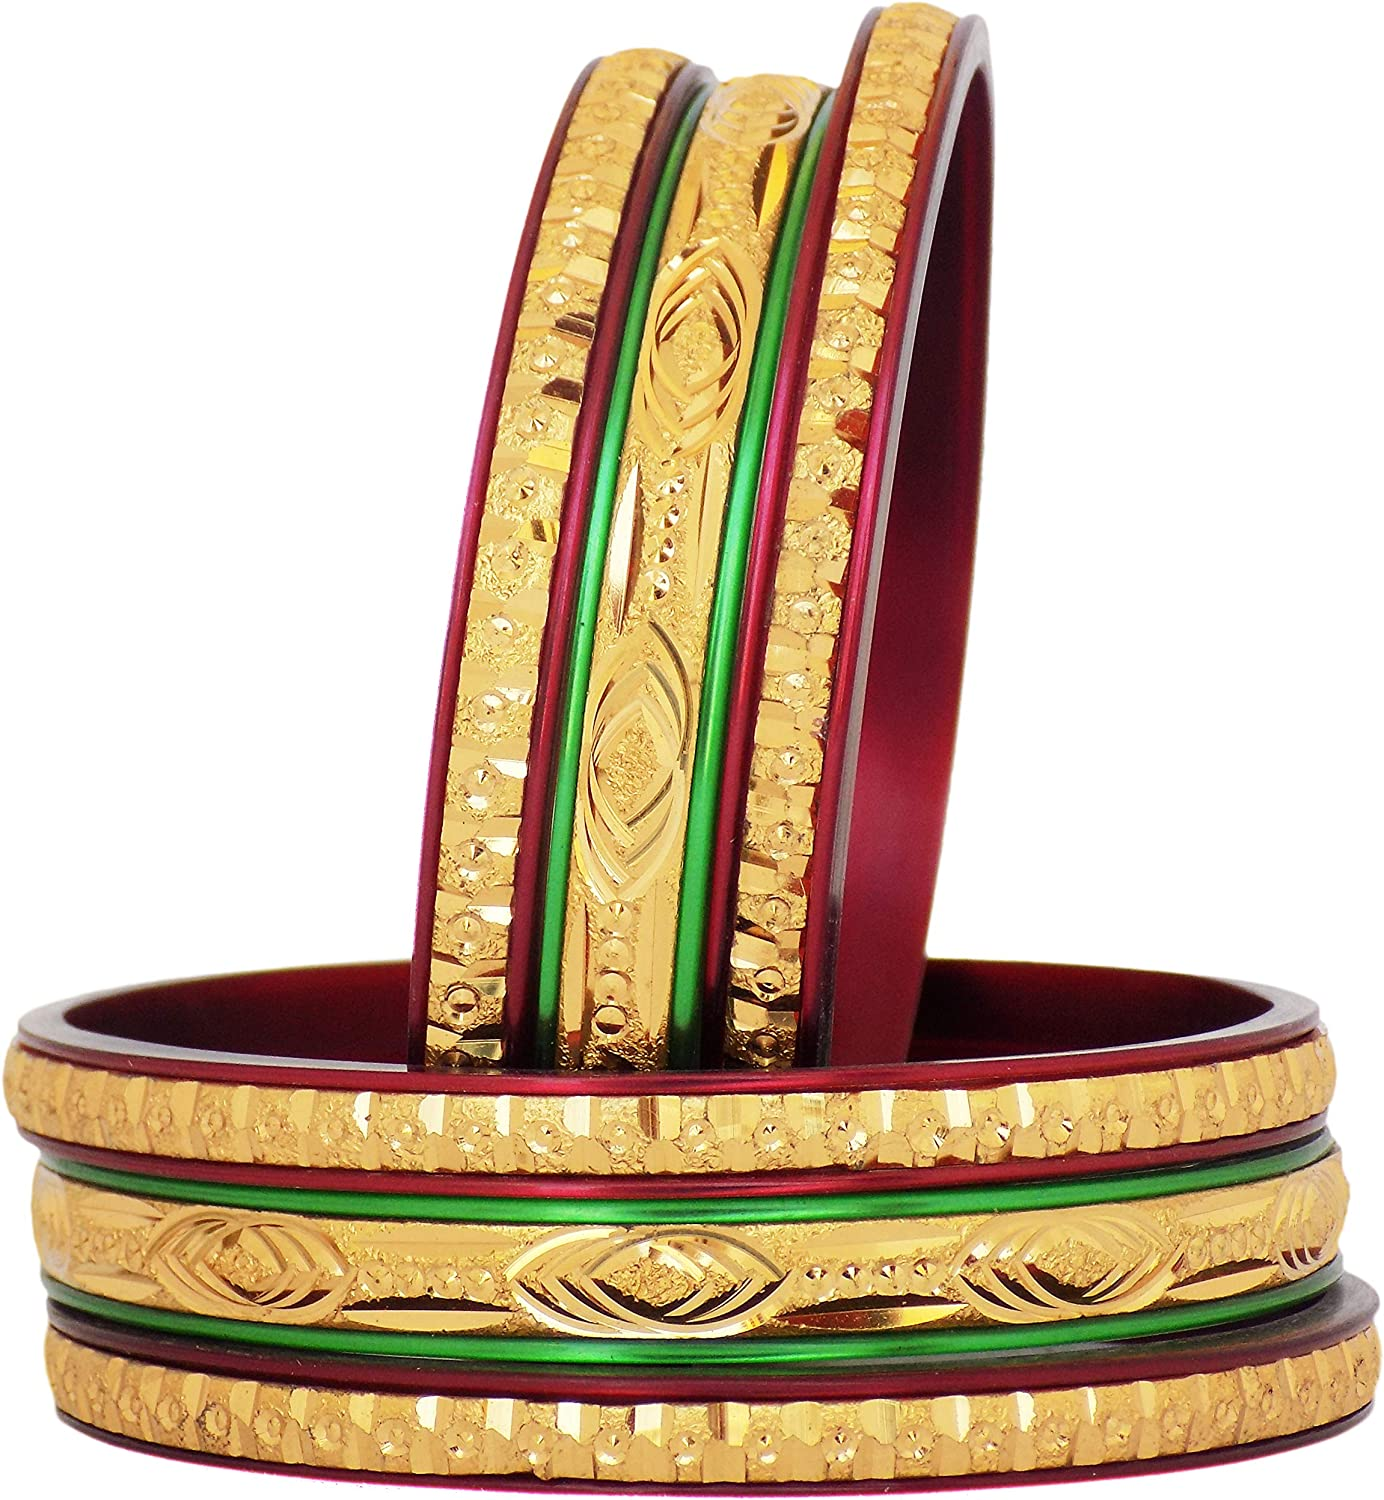 JD'Z COLLECTION Gold Plated Indian Jewelry Bangles Set Ethnic Style Beautiful Bangles Set Dailywear,Partywear Bangles Set